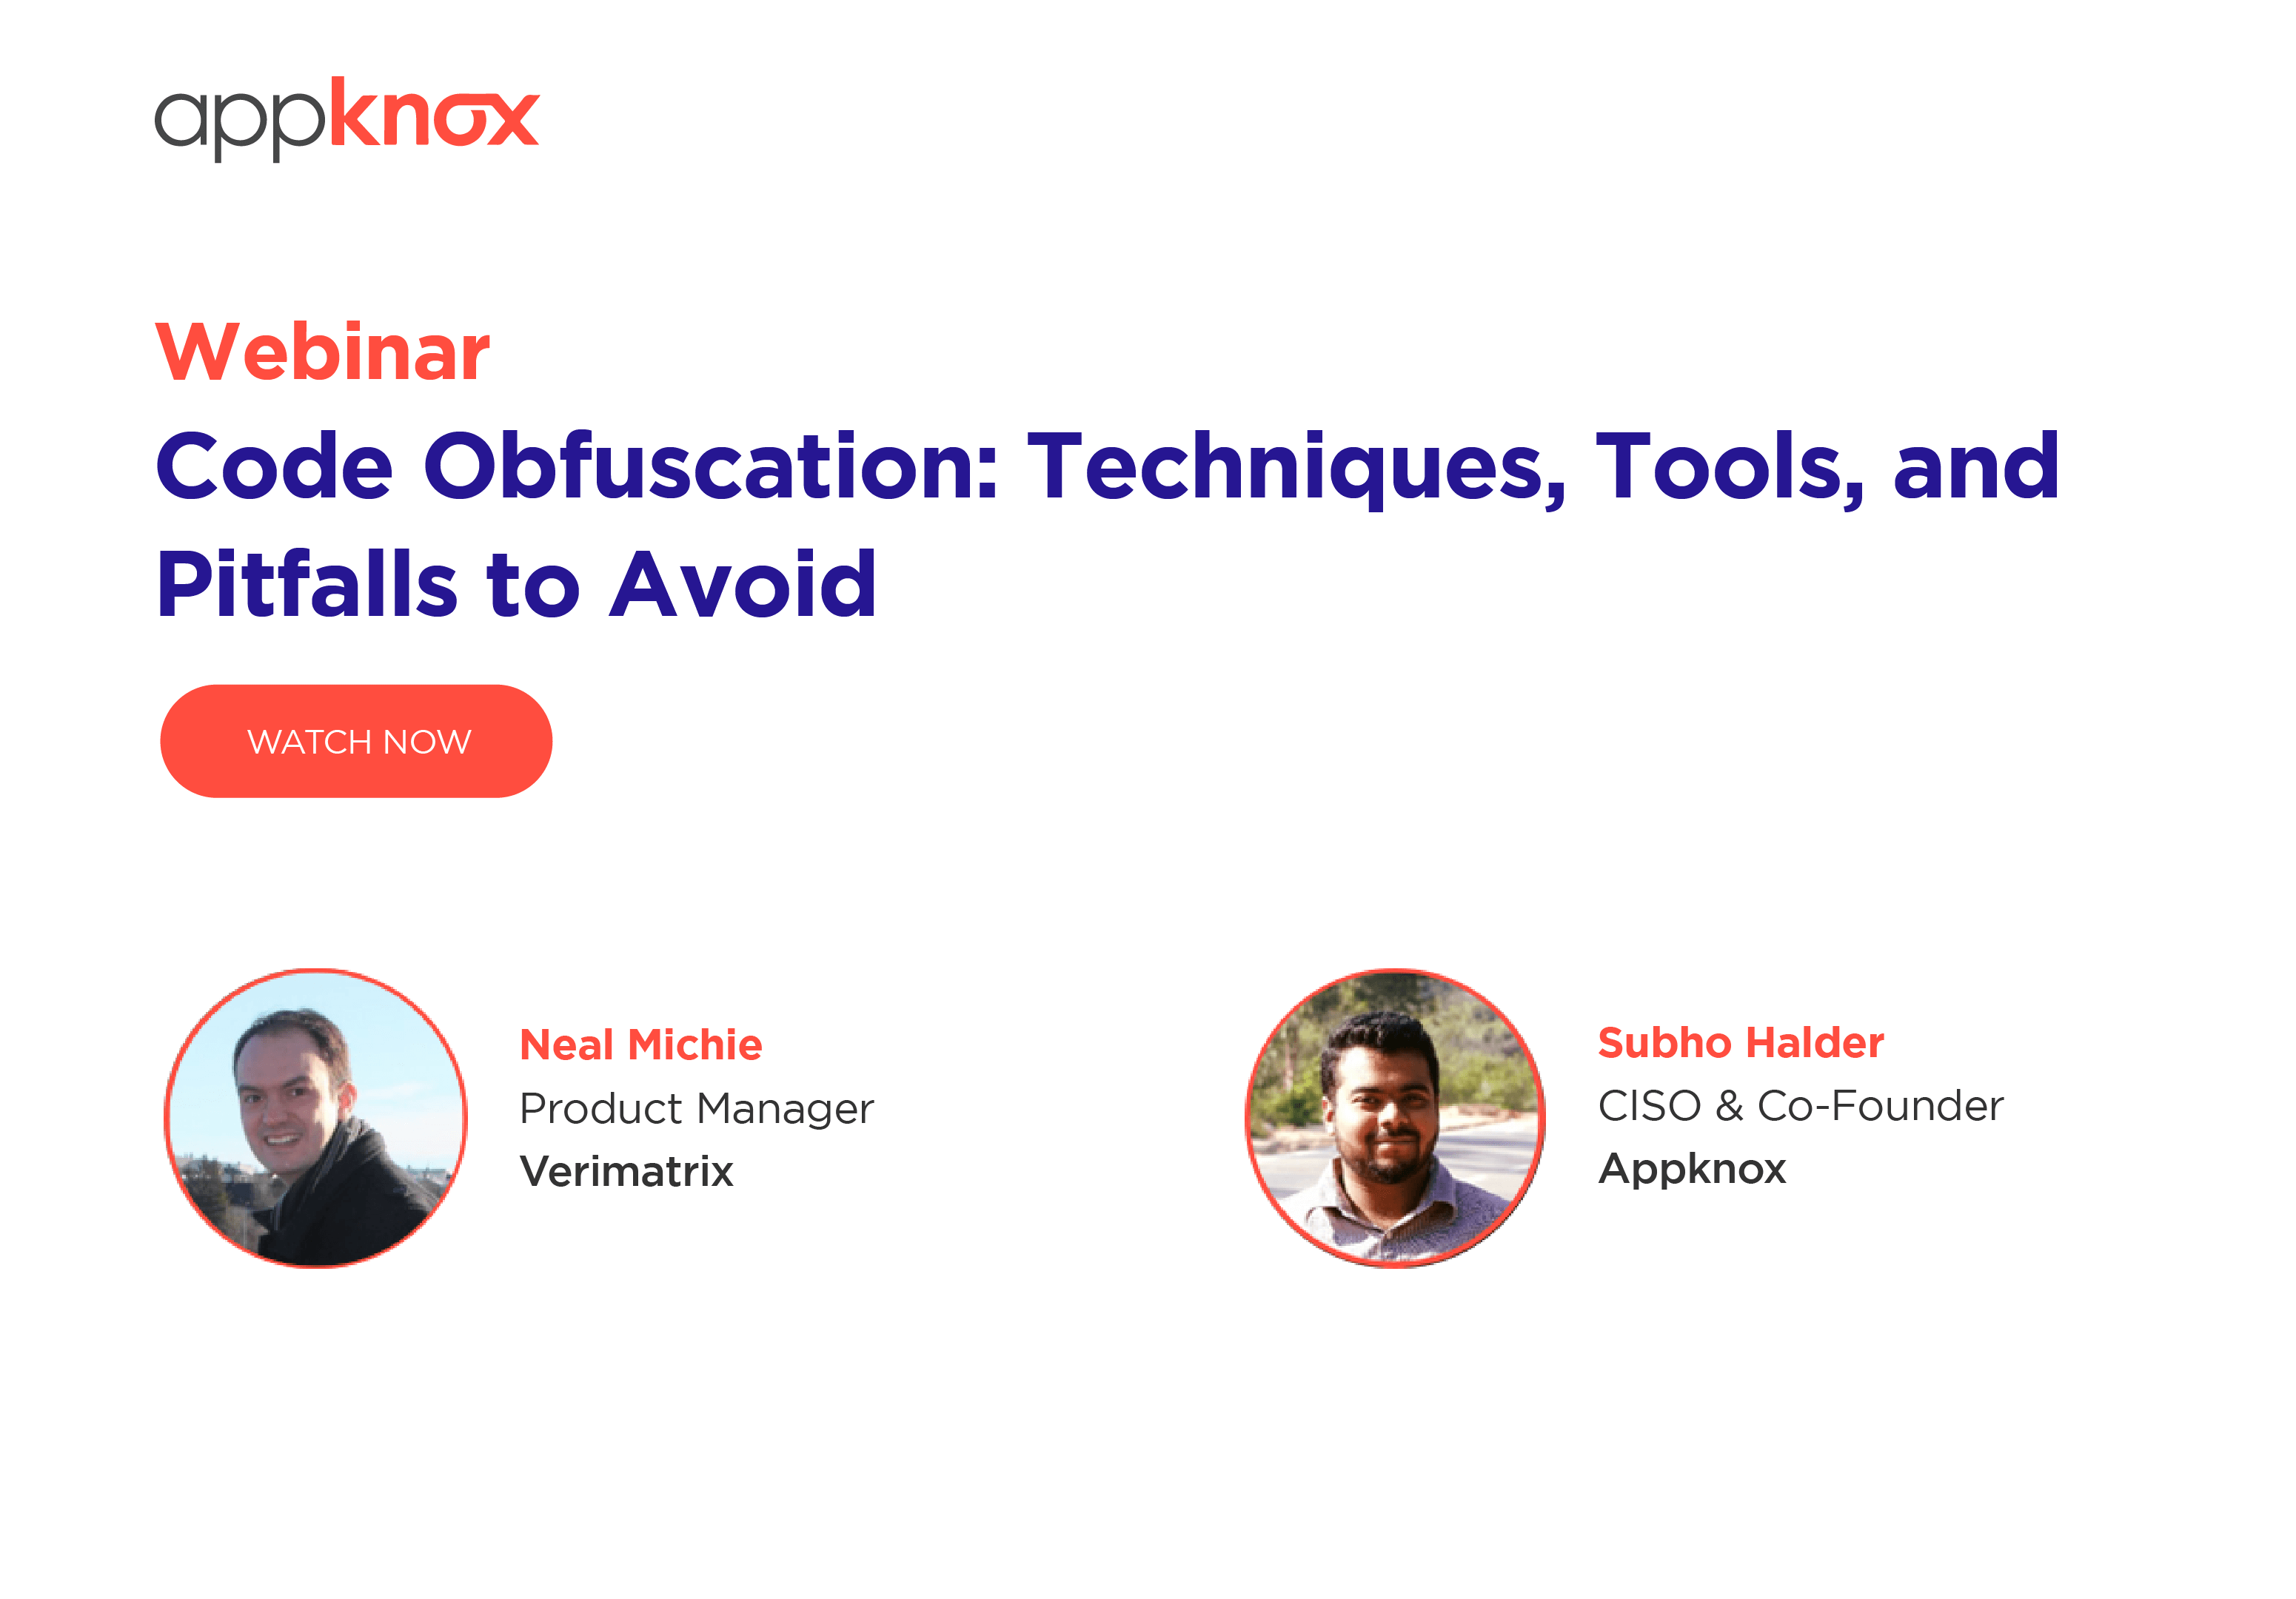 WEBINAR - Code Obfuscation- Techniques, Tools, and Pitfalls to Avoid